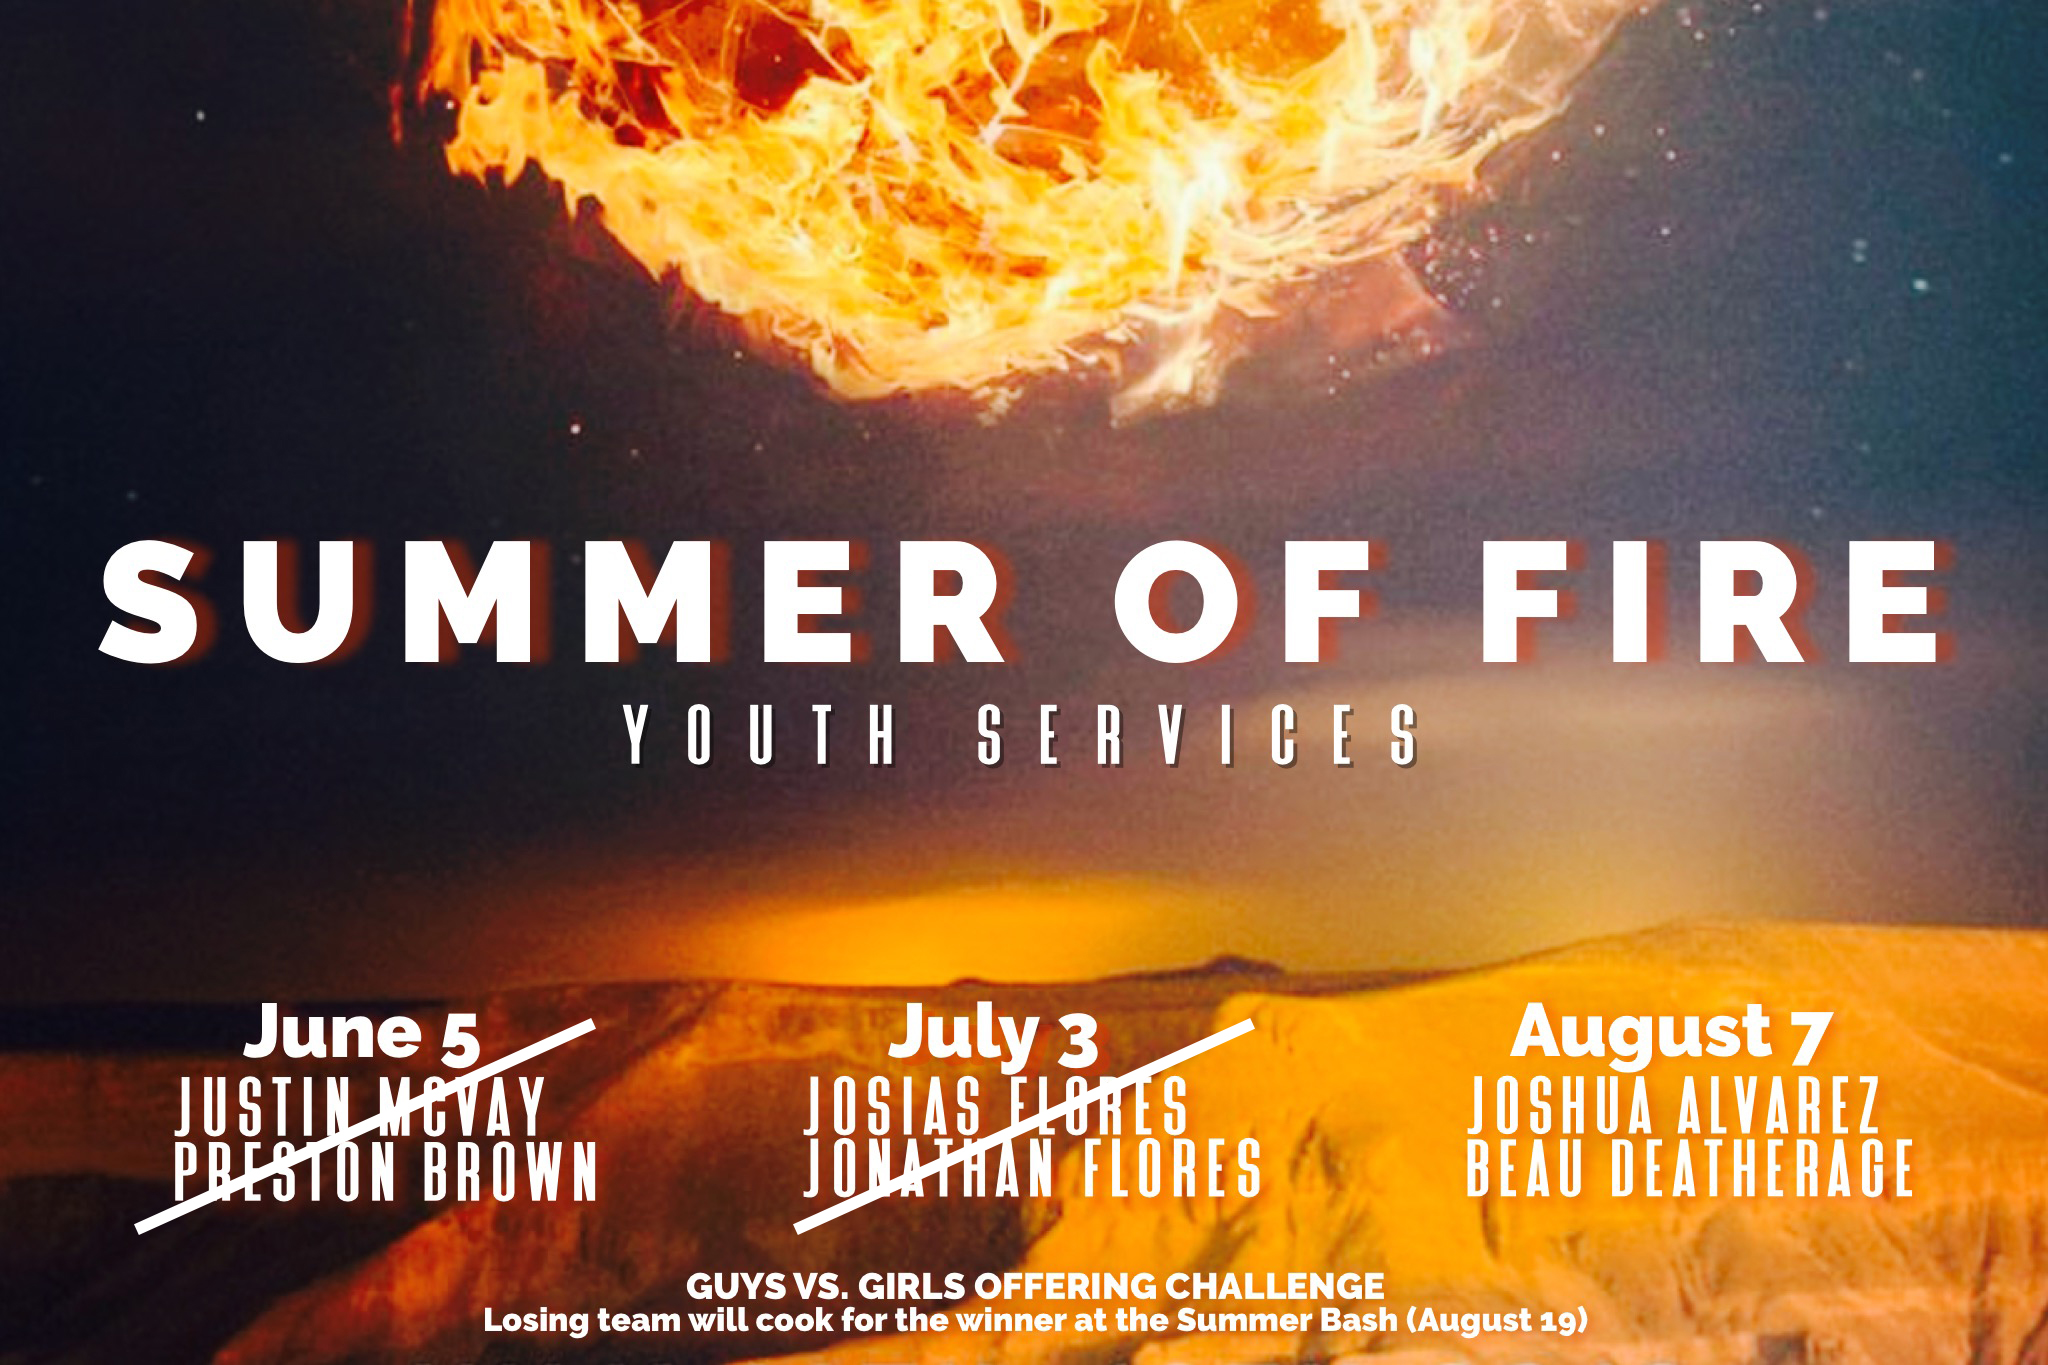 Summer of Fire Youth Services | Next is Aug 7, 2019